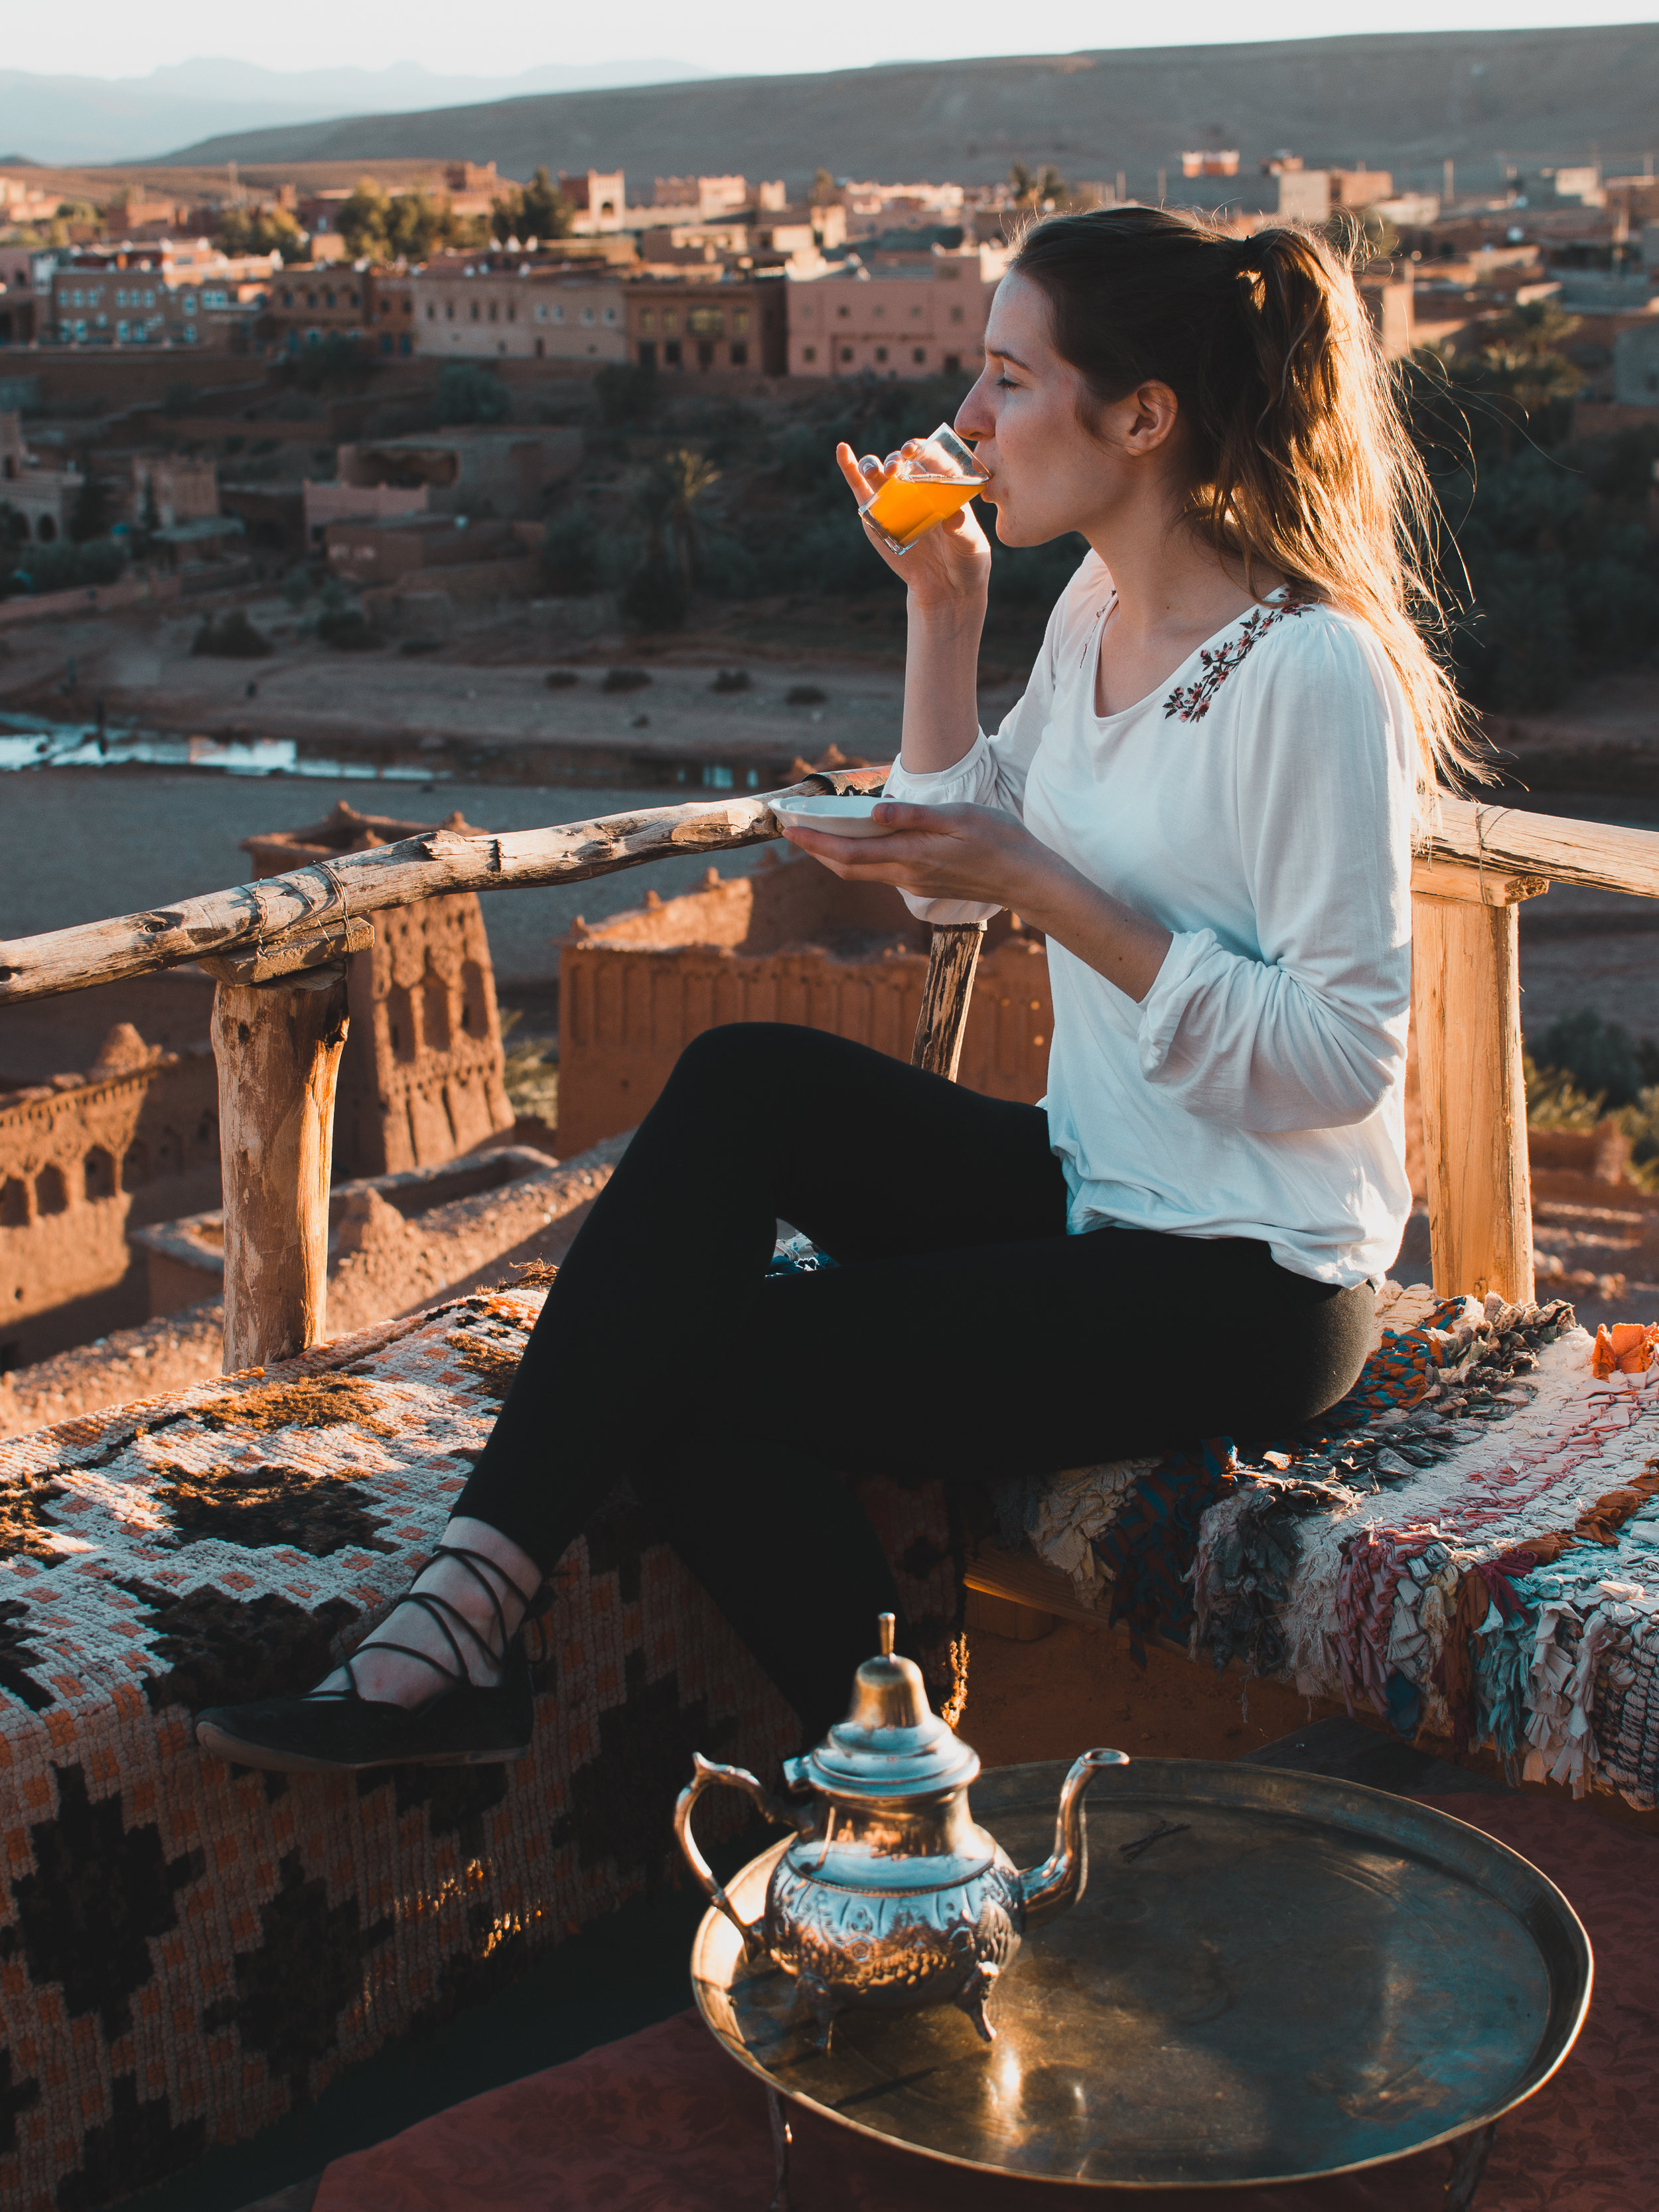 Sipping mint tea at Ait Benhaddou - one of Morocco's two filming locations from Game of Thrones